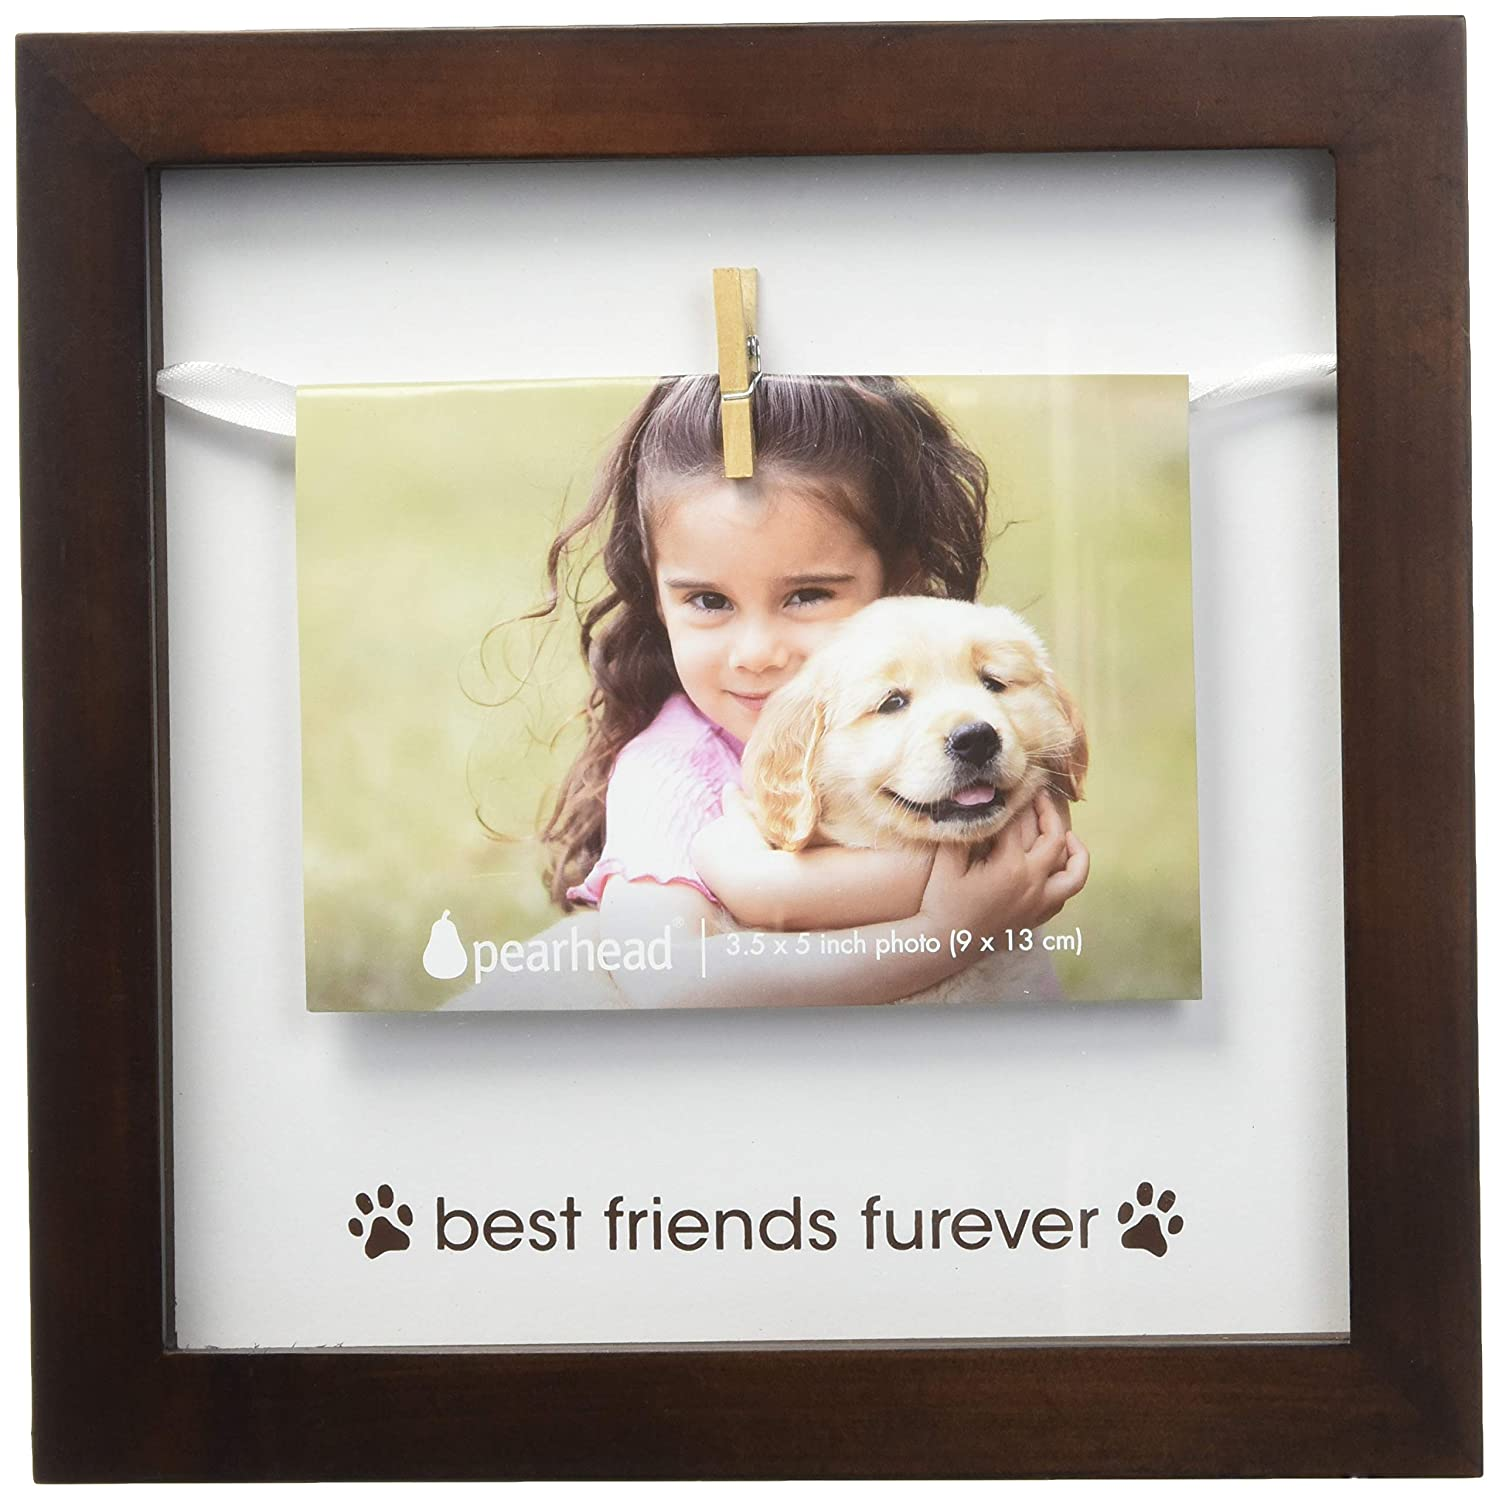 Amazon.com : Pearhead Pet Best Friends Furever Clothespin Photo ...